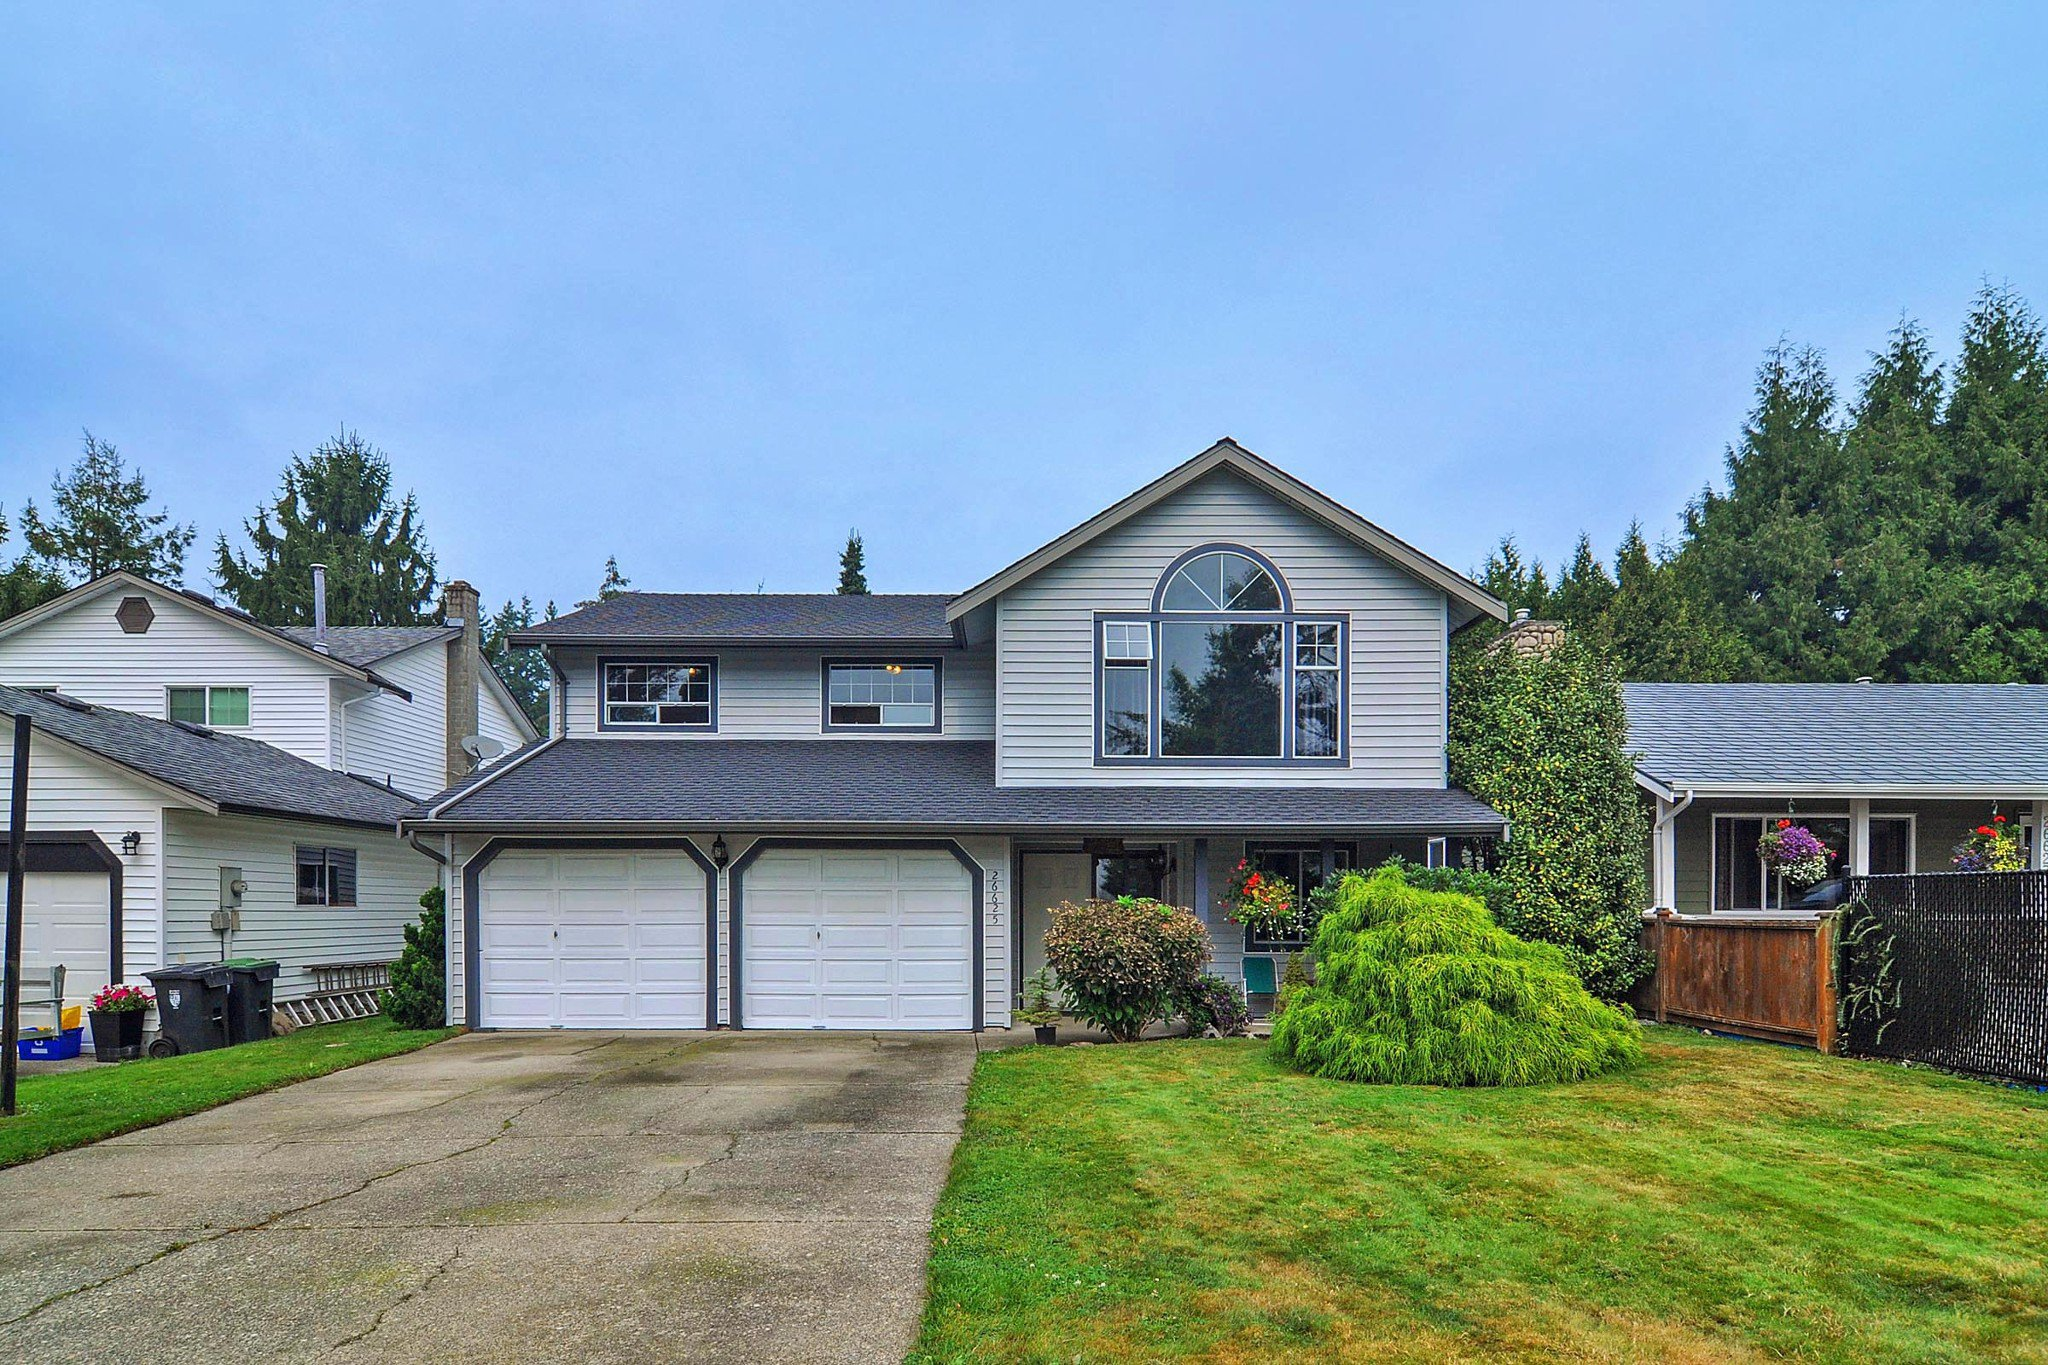 Main Photo: 26625 28A Avenue in Langley: Aldergrove Langley House for sale : MLS®# R2500058